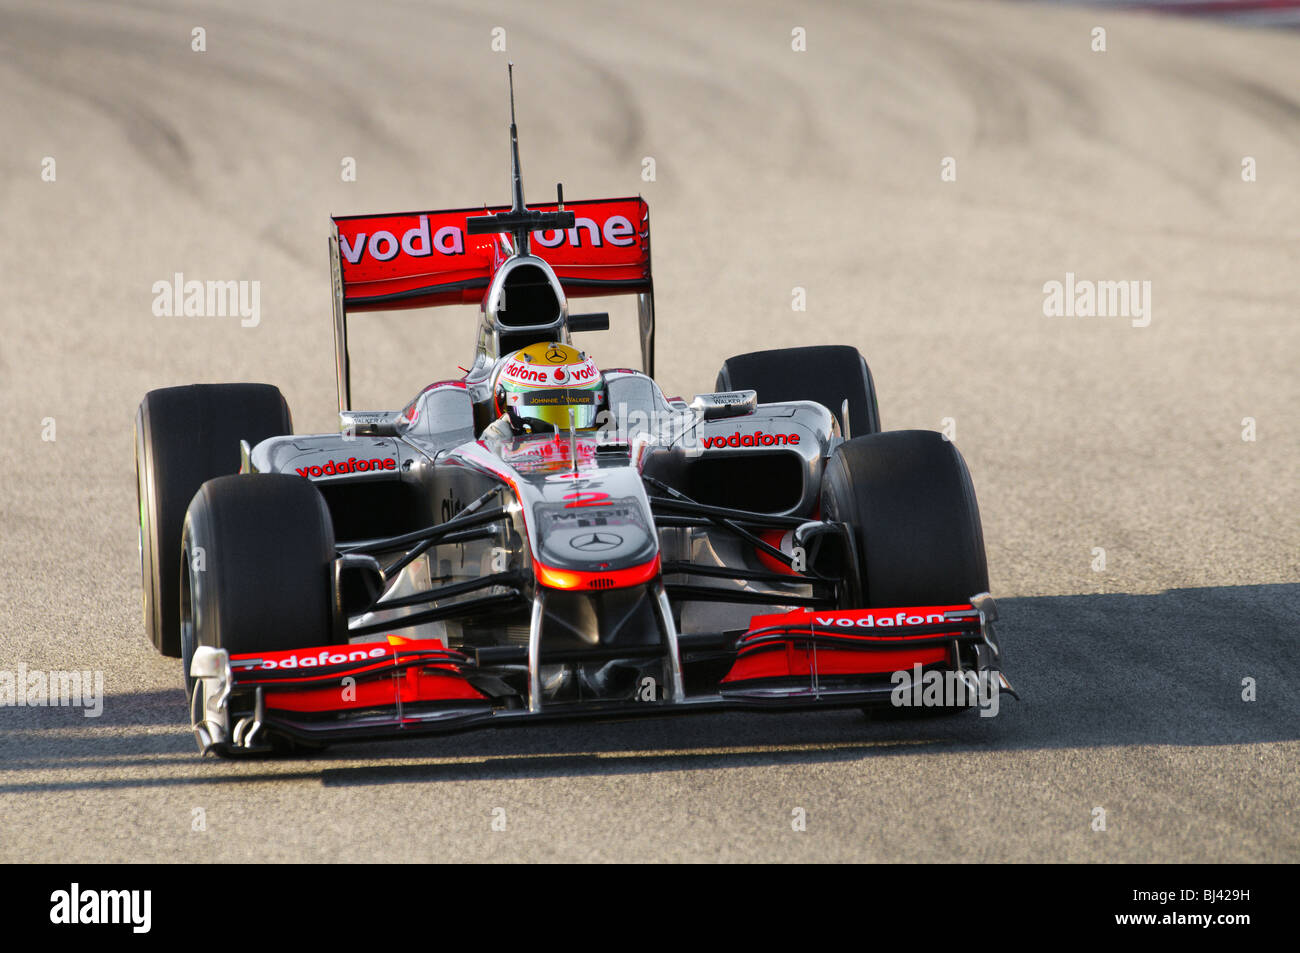 Lewis HAMILTON (GB) in the McLaren-Mercedes MP4-25 race car during Formula 1 Tests - Stock Image